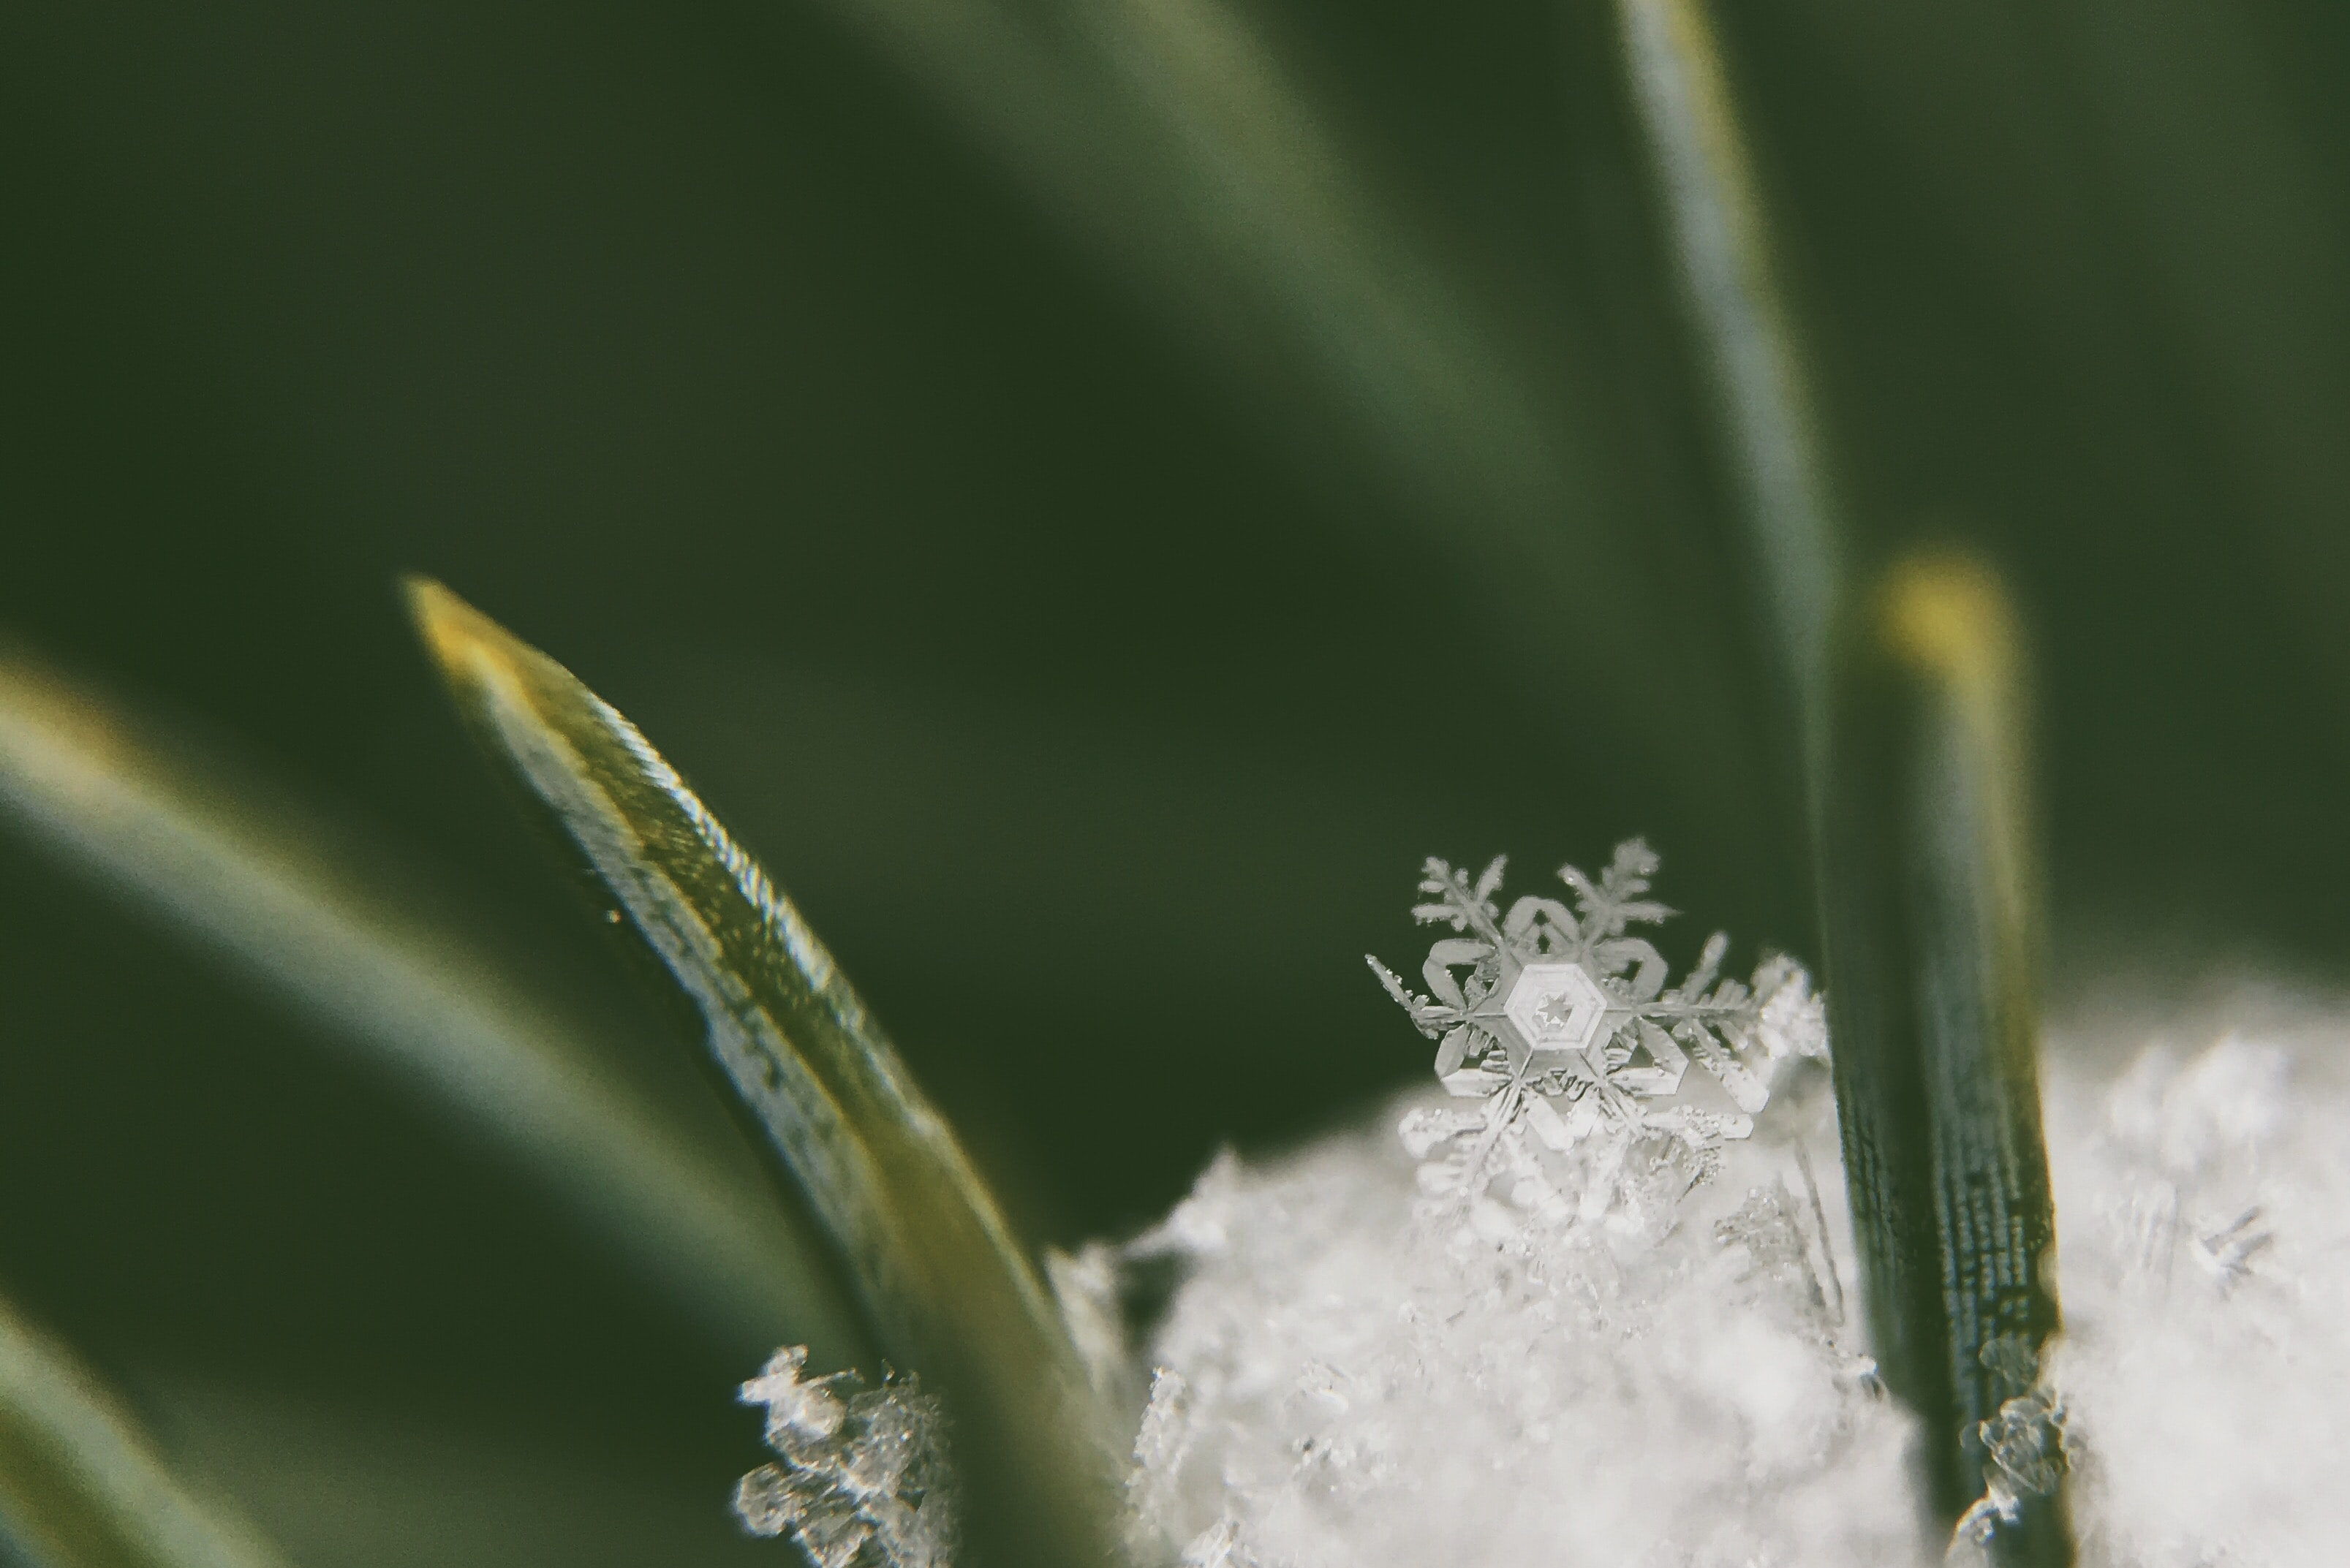 Single snowflake crystal falls into a pile of ice on pine needles